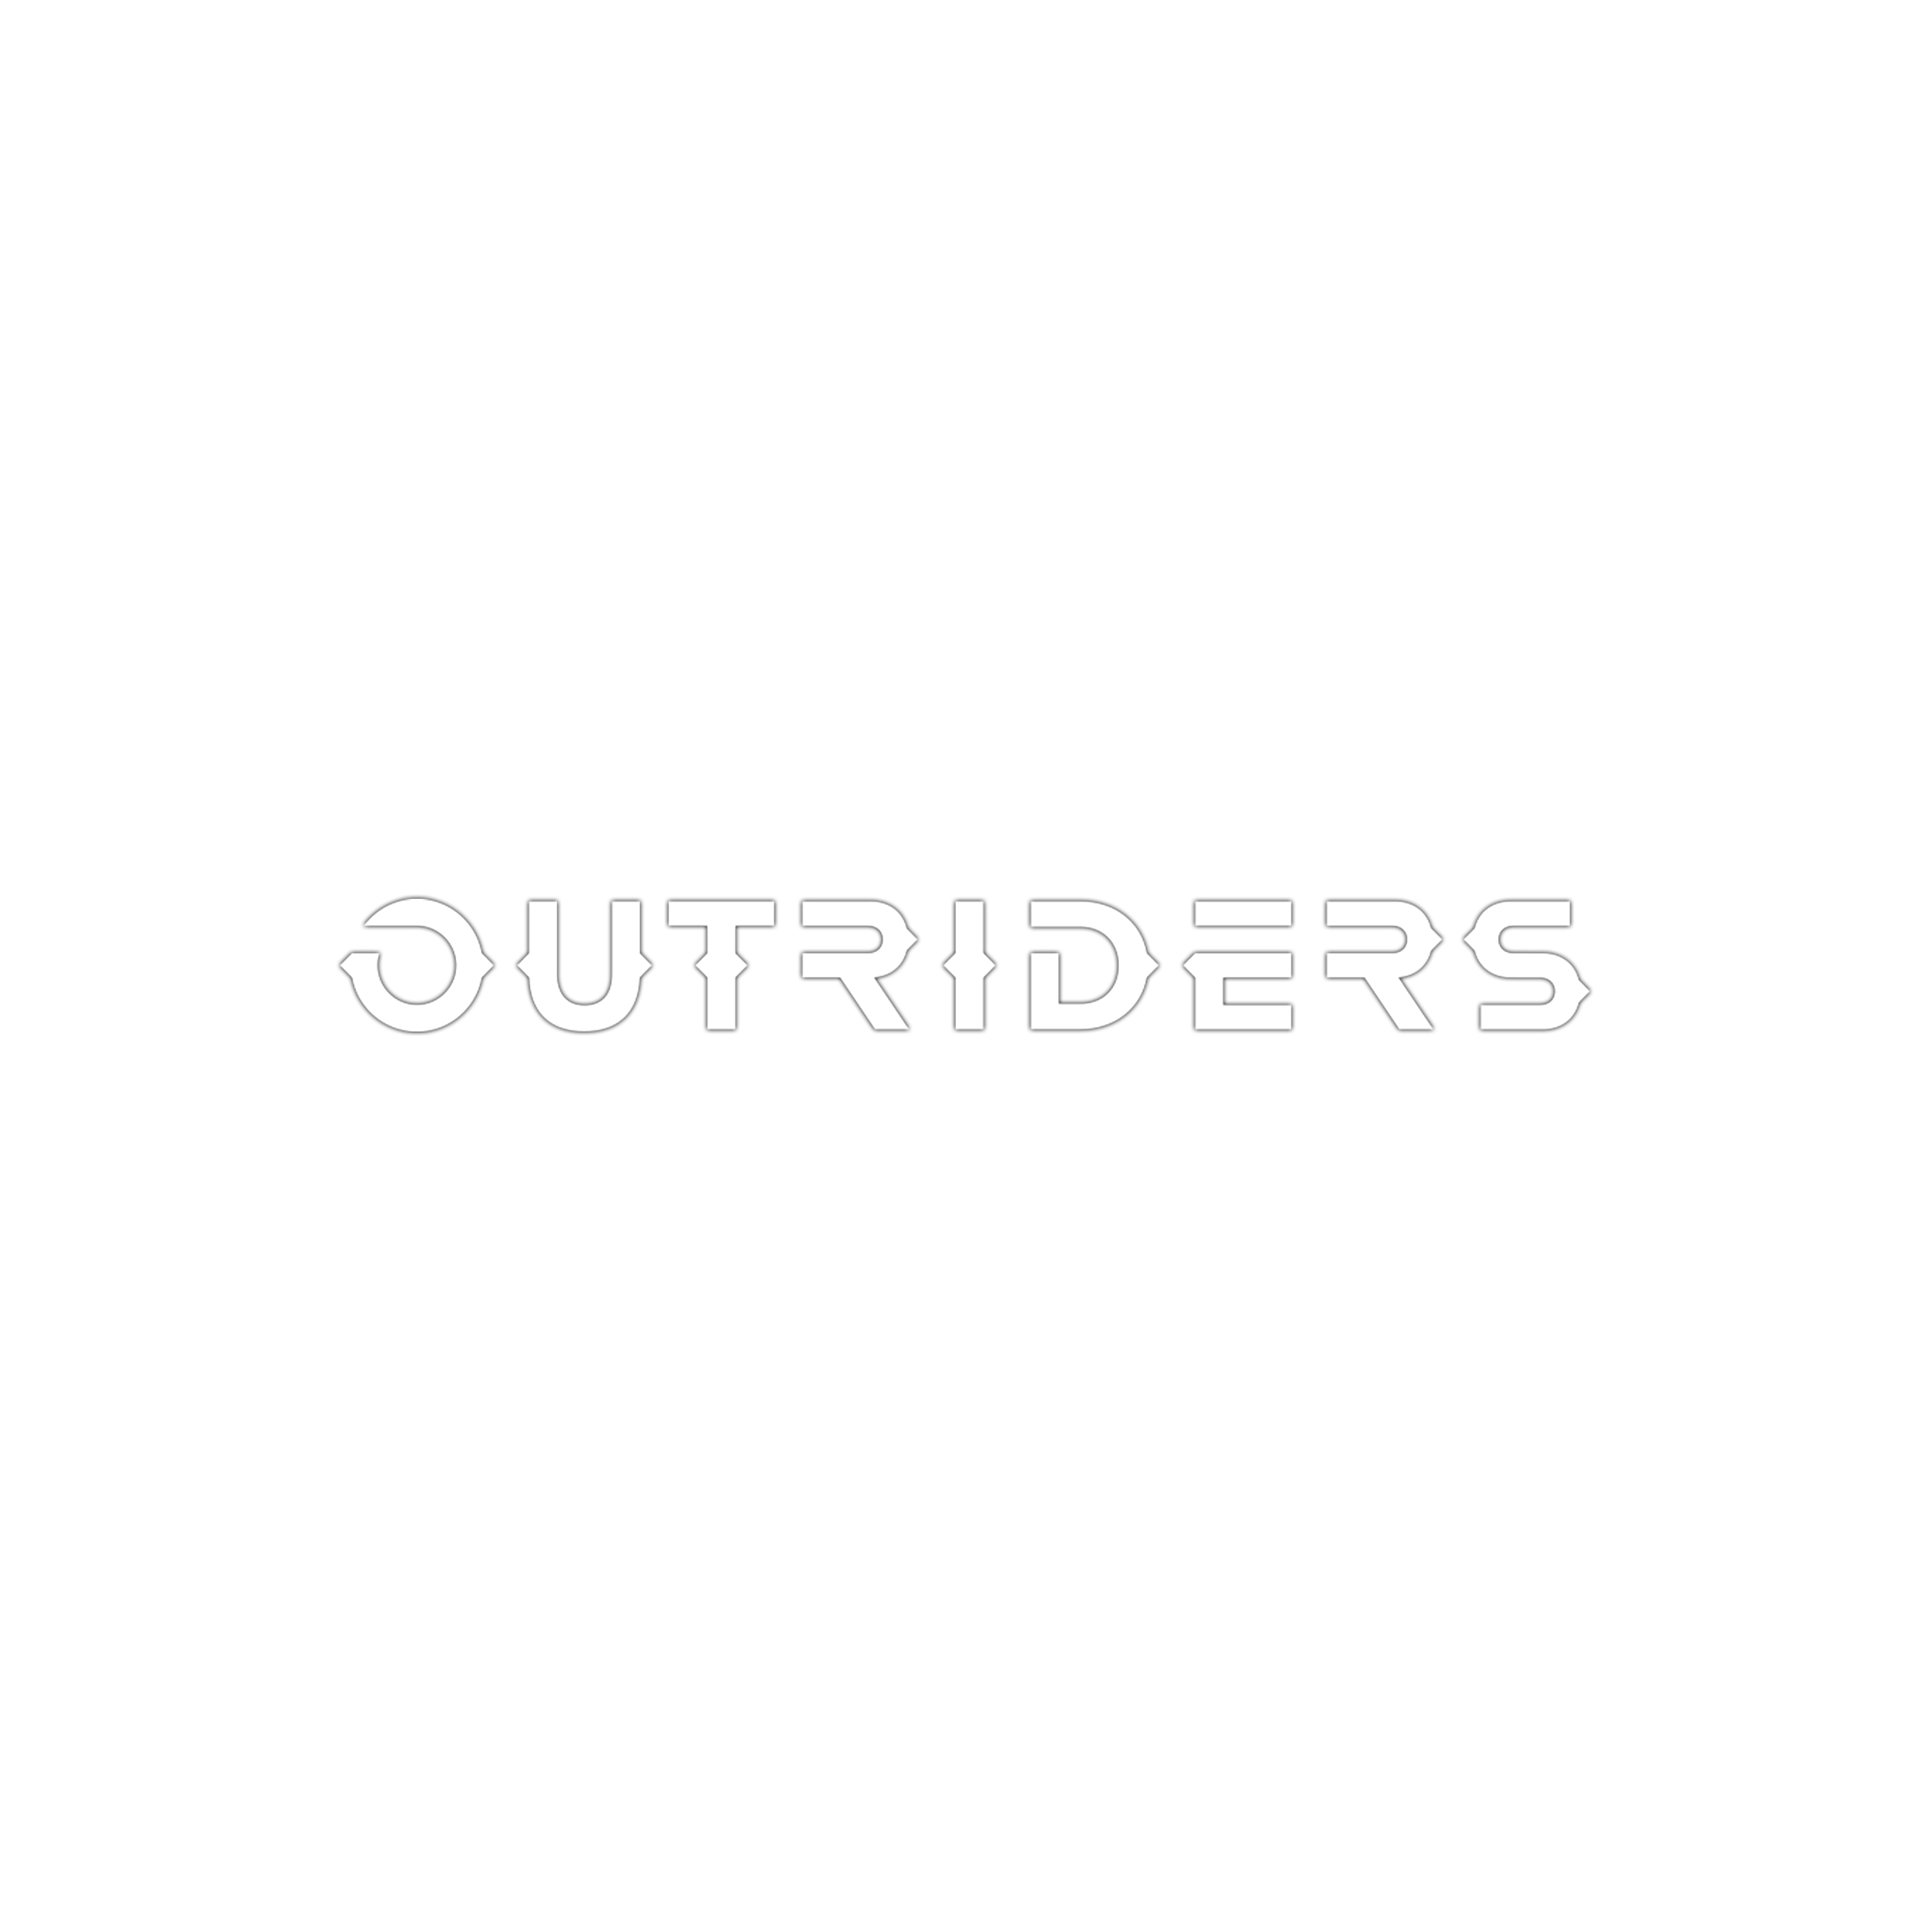 Outriders logo